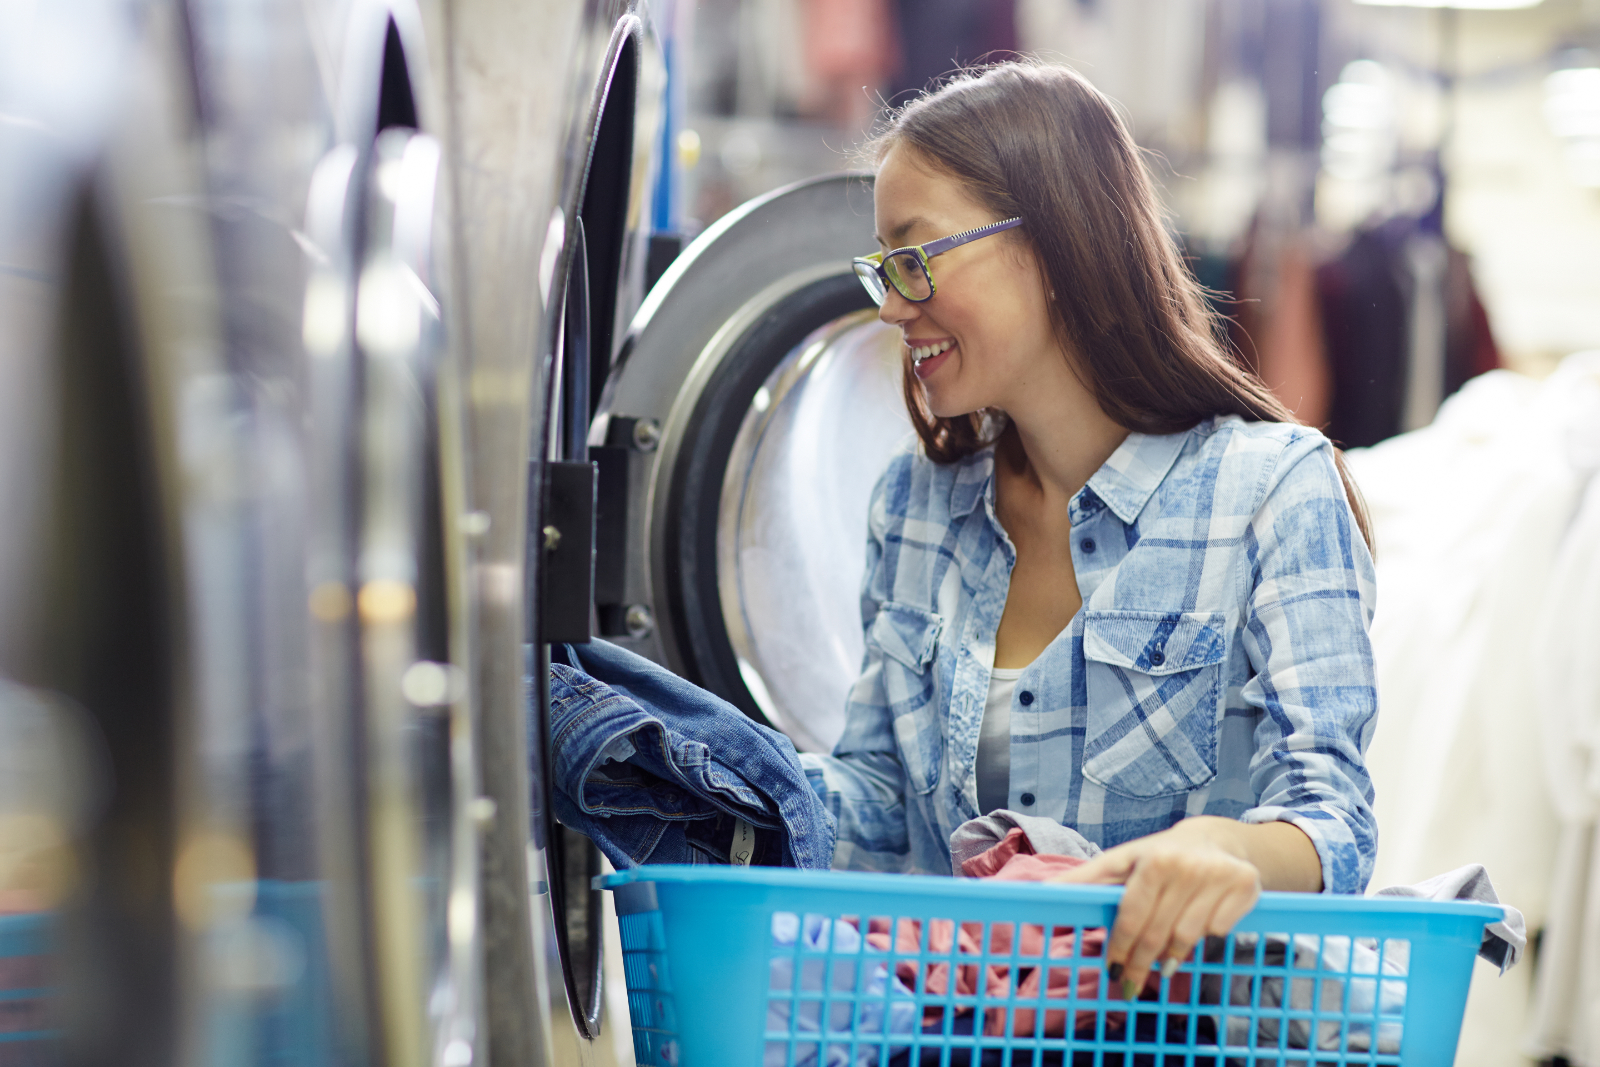 De-stress your next trip to the laundromat with these 5 tips